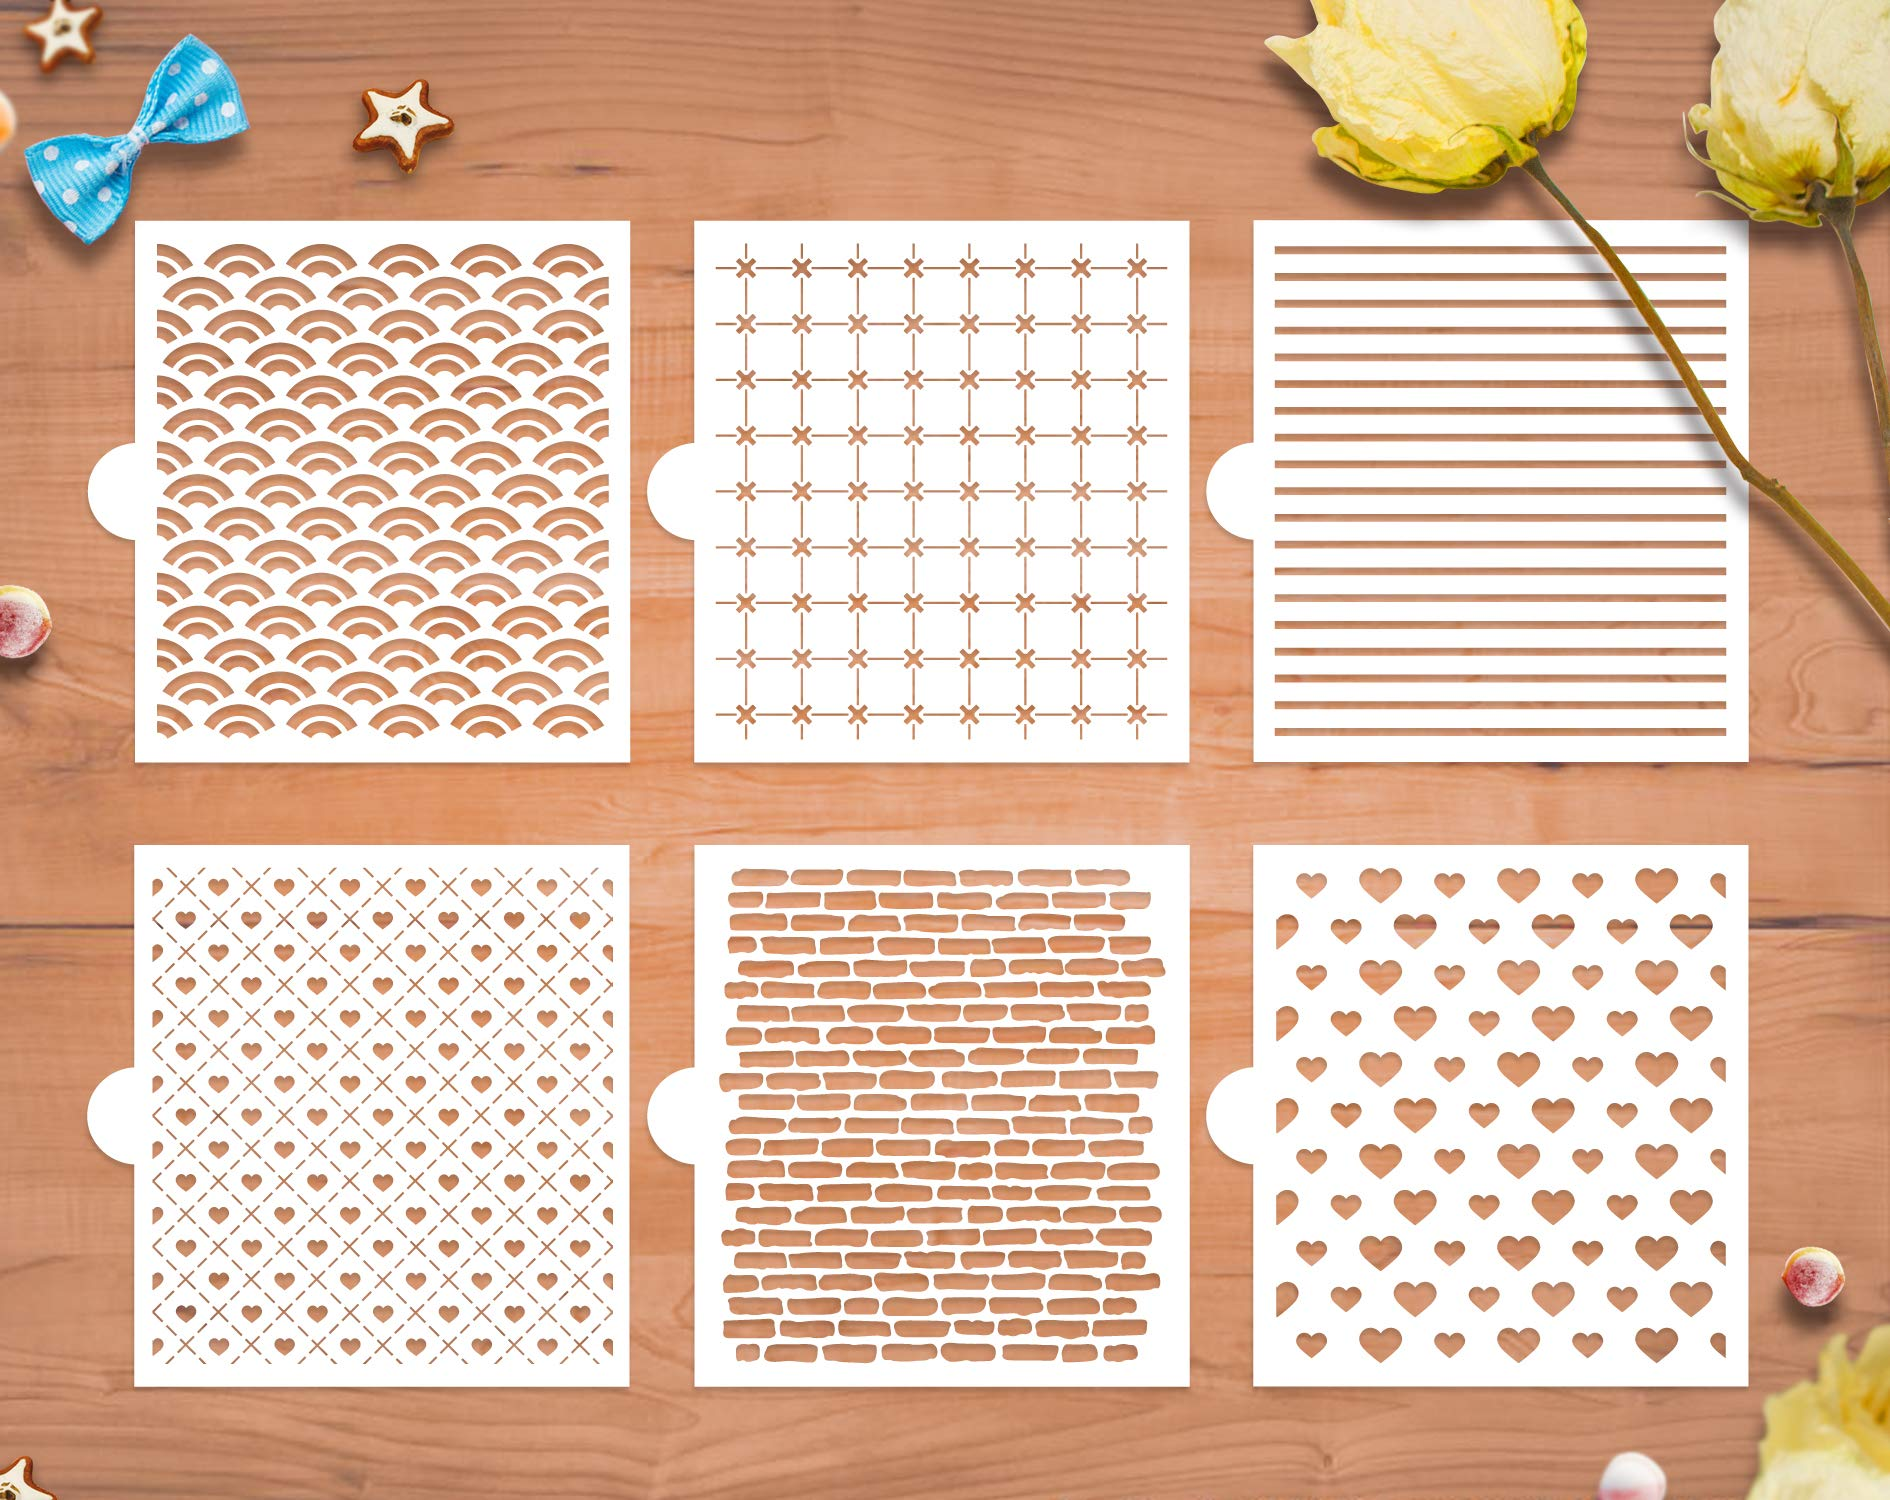 GSS Designs Cookie Stencil 6 Pack, Food Safe Templates for Decorating & Baking, Bricks, Waves, Hearts, Ruler (SL-058) by G GSS Designs